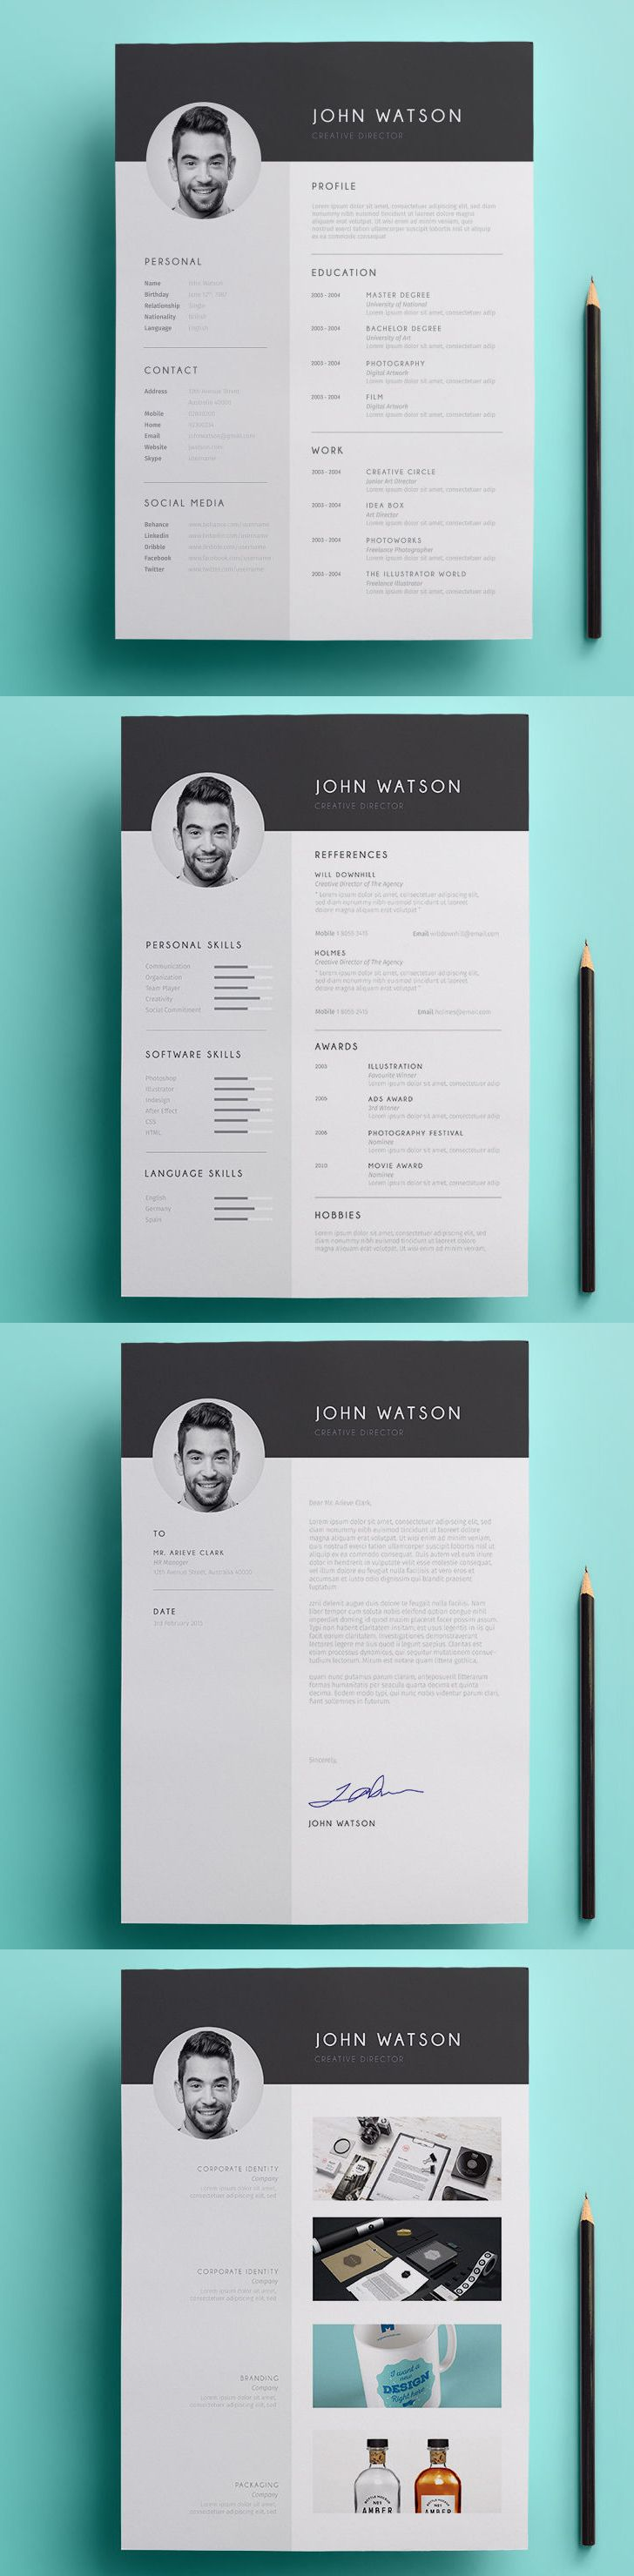 Best 25 Cv format ideas on Pinterest